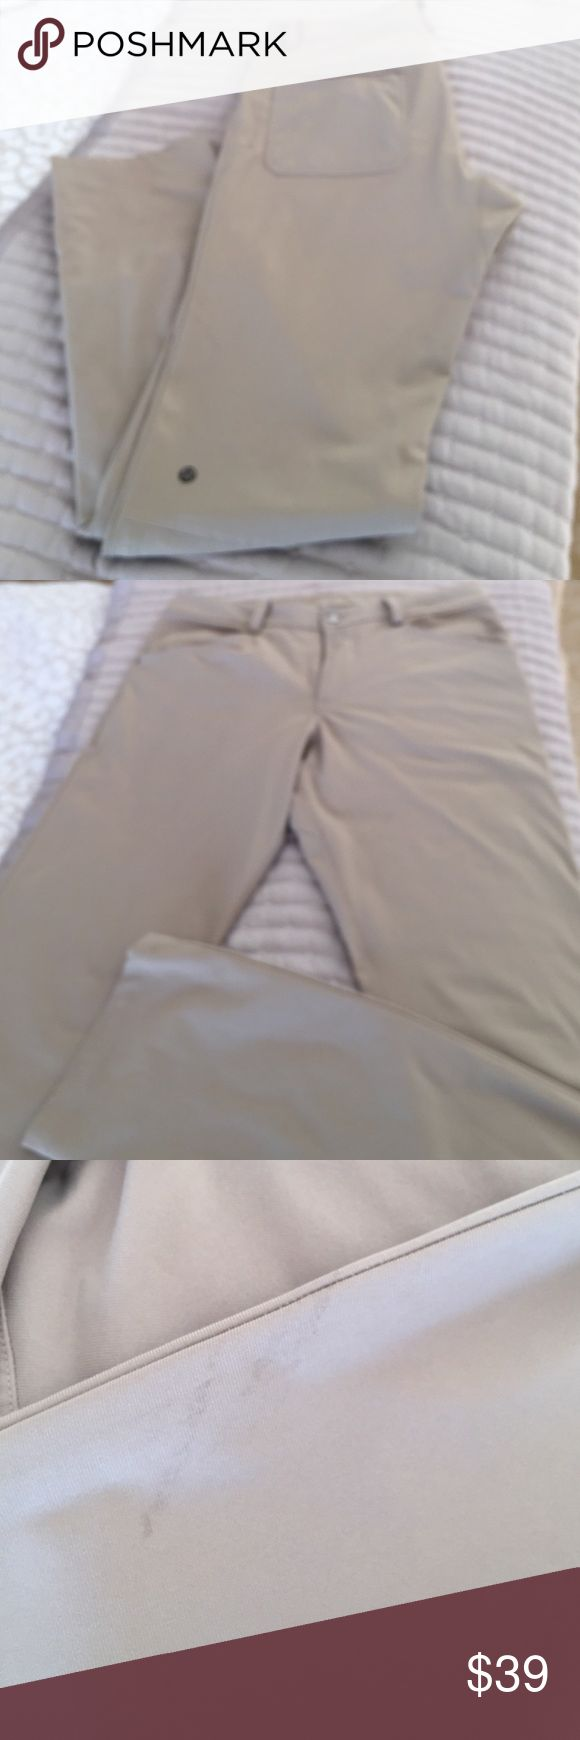 Men's Lululemon Kahki Pants Size 32 Hardly worn. If you are a person who can treat a few very very slight stains you will think these are brand new. I didn't even see the marks on these until I started taking the pictures. You will probably be able to get these very very light stains out in one wash. So hard to find these men's pants in this color. Never altered. Length is at least 32. Like I said. Has a few very slight slight marks. Any good laundry person can get this out or if not when…